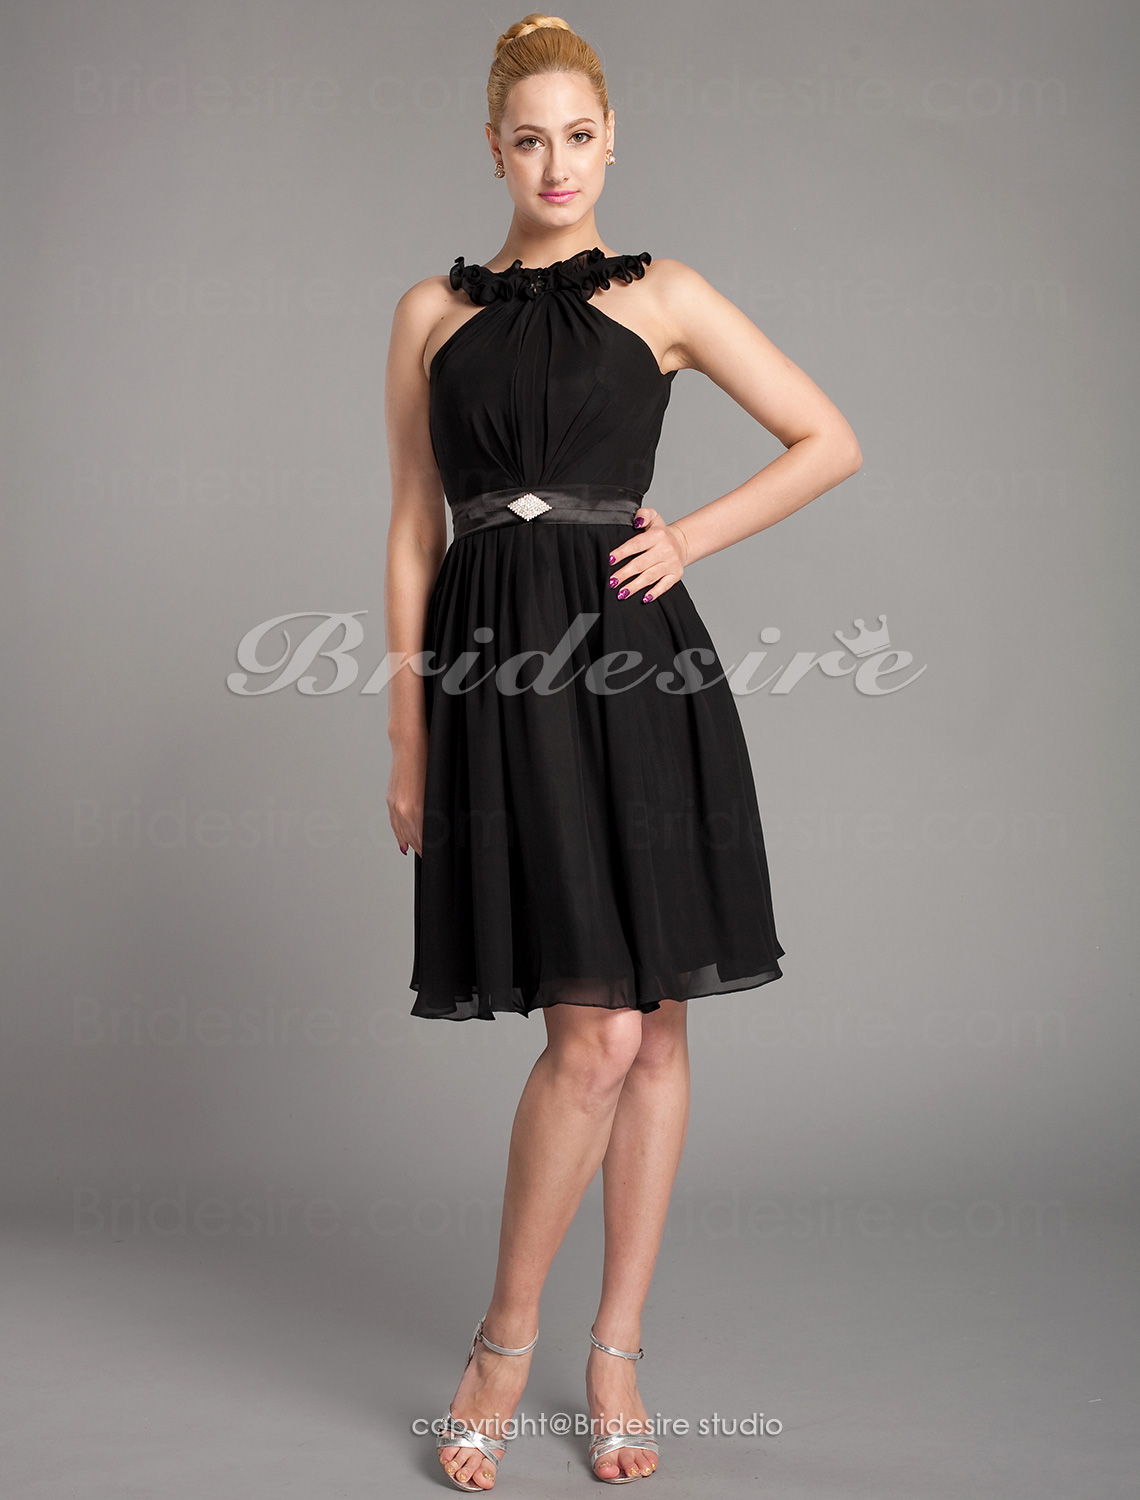 A-line Chiffon Knee-length High Neck Mother of the Bride Dress